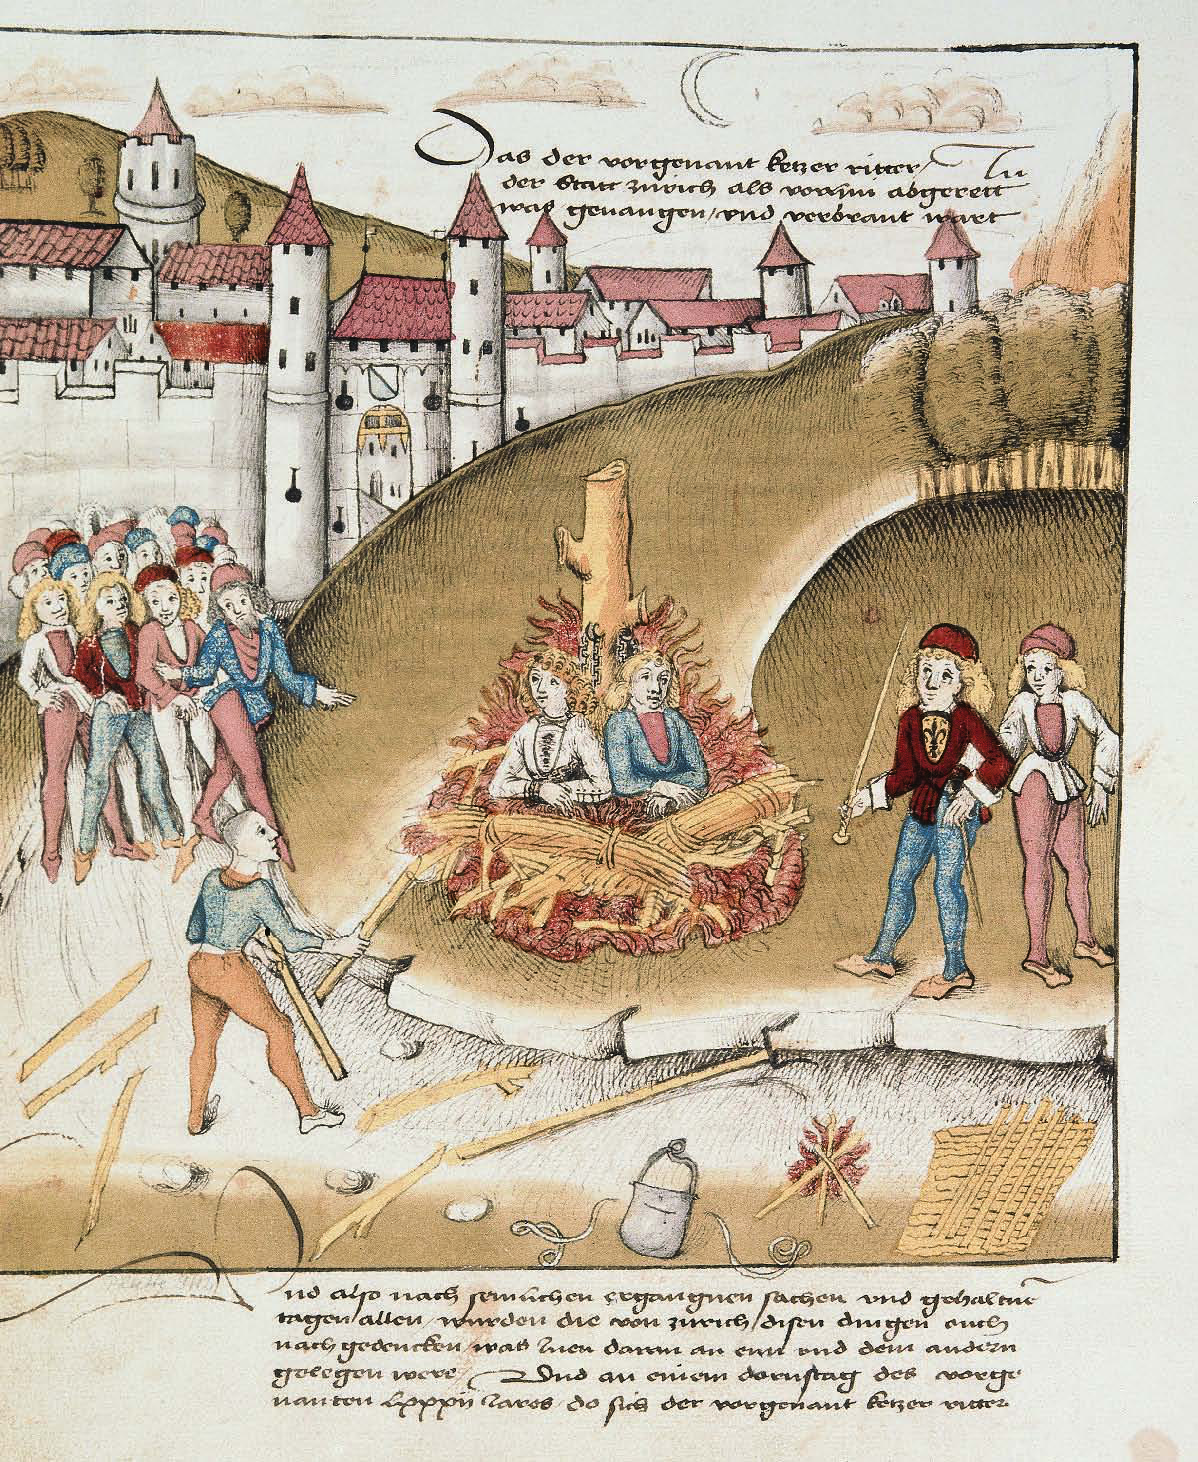 http://upload.wikimedia.org/wikipedia/commons/5/5c/Burning_of_Sodomites.jpg